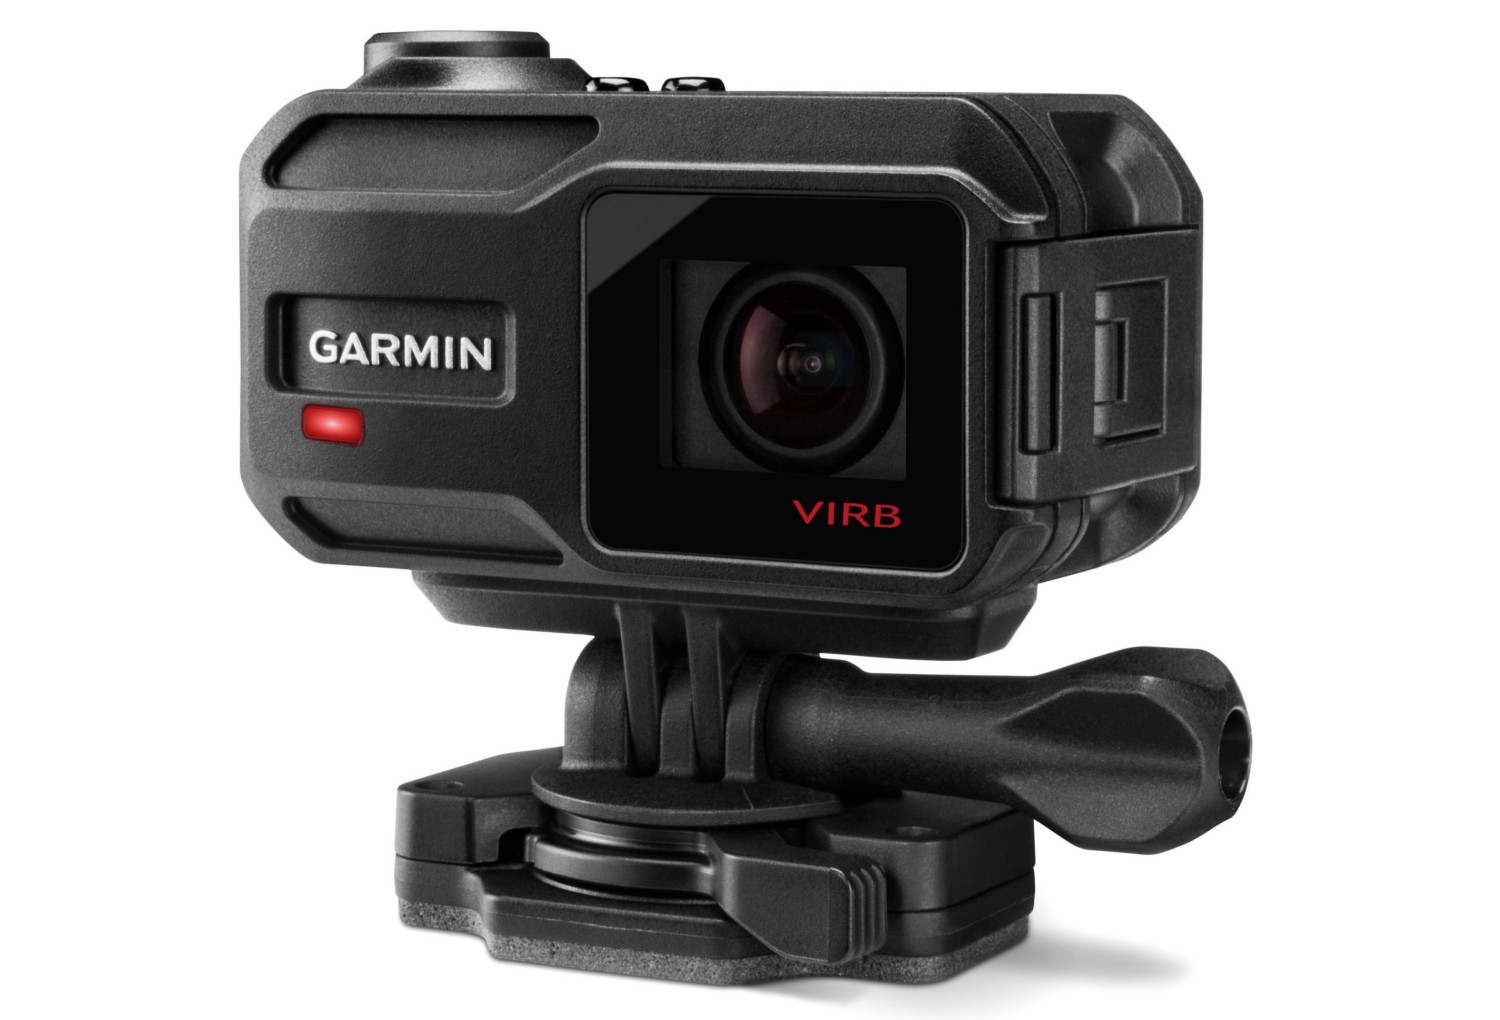 sports d 39 action cam ra garmin virb ex d 39 occasion. Black Bedroom Furniture Sets. Home Design Ideas